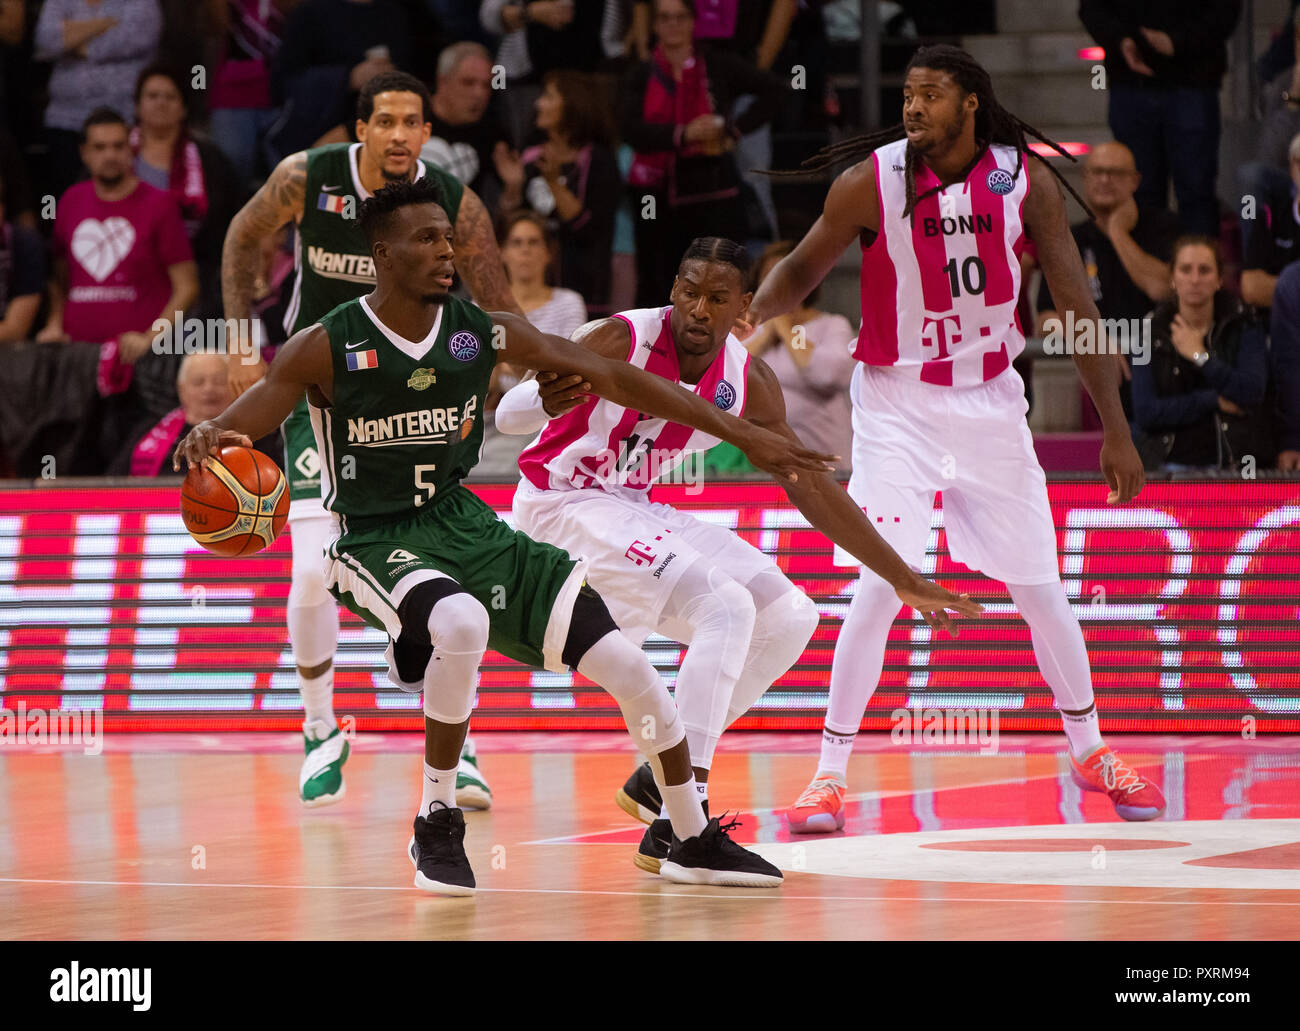 Bonn, Germany October 23 2018, Basketball, Champions League, Telekom Baskets Bonn vs Nanterre 92: Lahou Konate (Nanterre) und Yorman Polas Bartolo (Bonn) in competition.             Credit: Juergen Schwarz/Alamy Live News - Stock Image